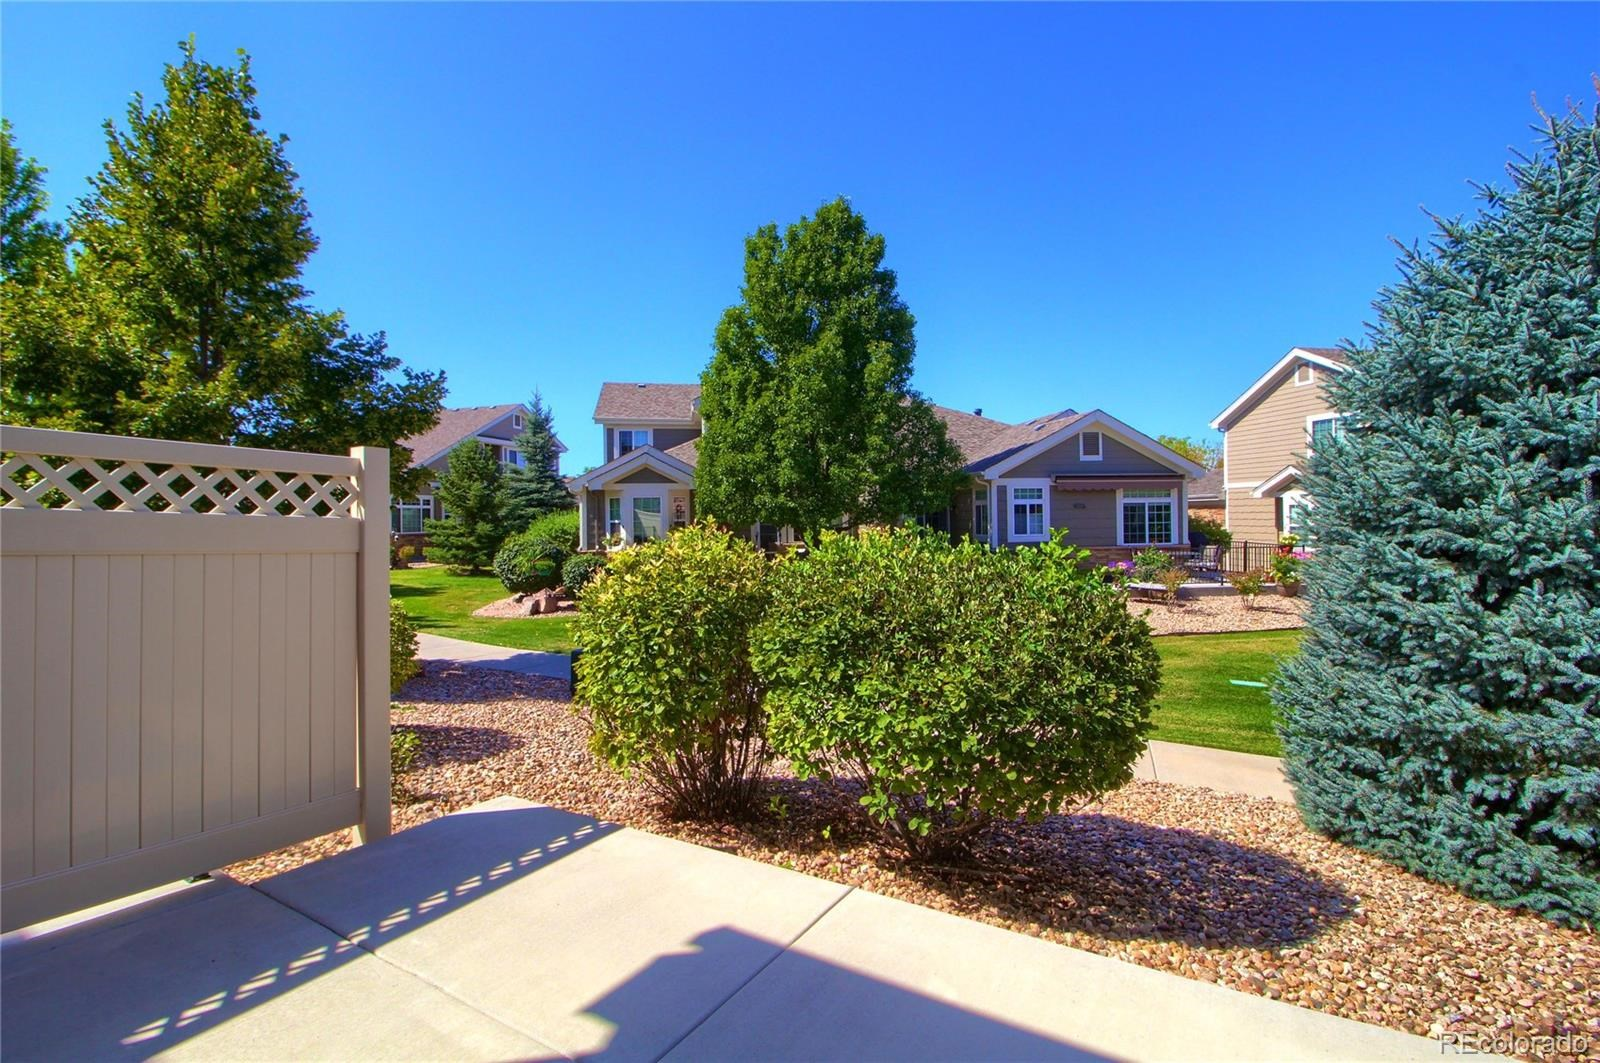 MLS# 8597792 - 37 - 13787 Stone Circle #101, Broomfield, CO 80023